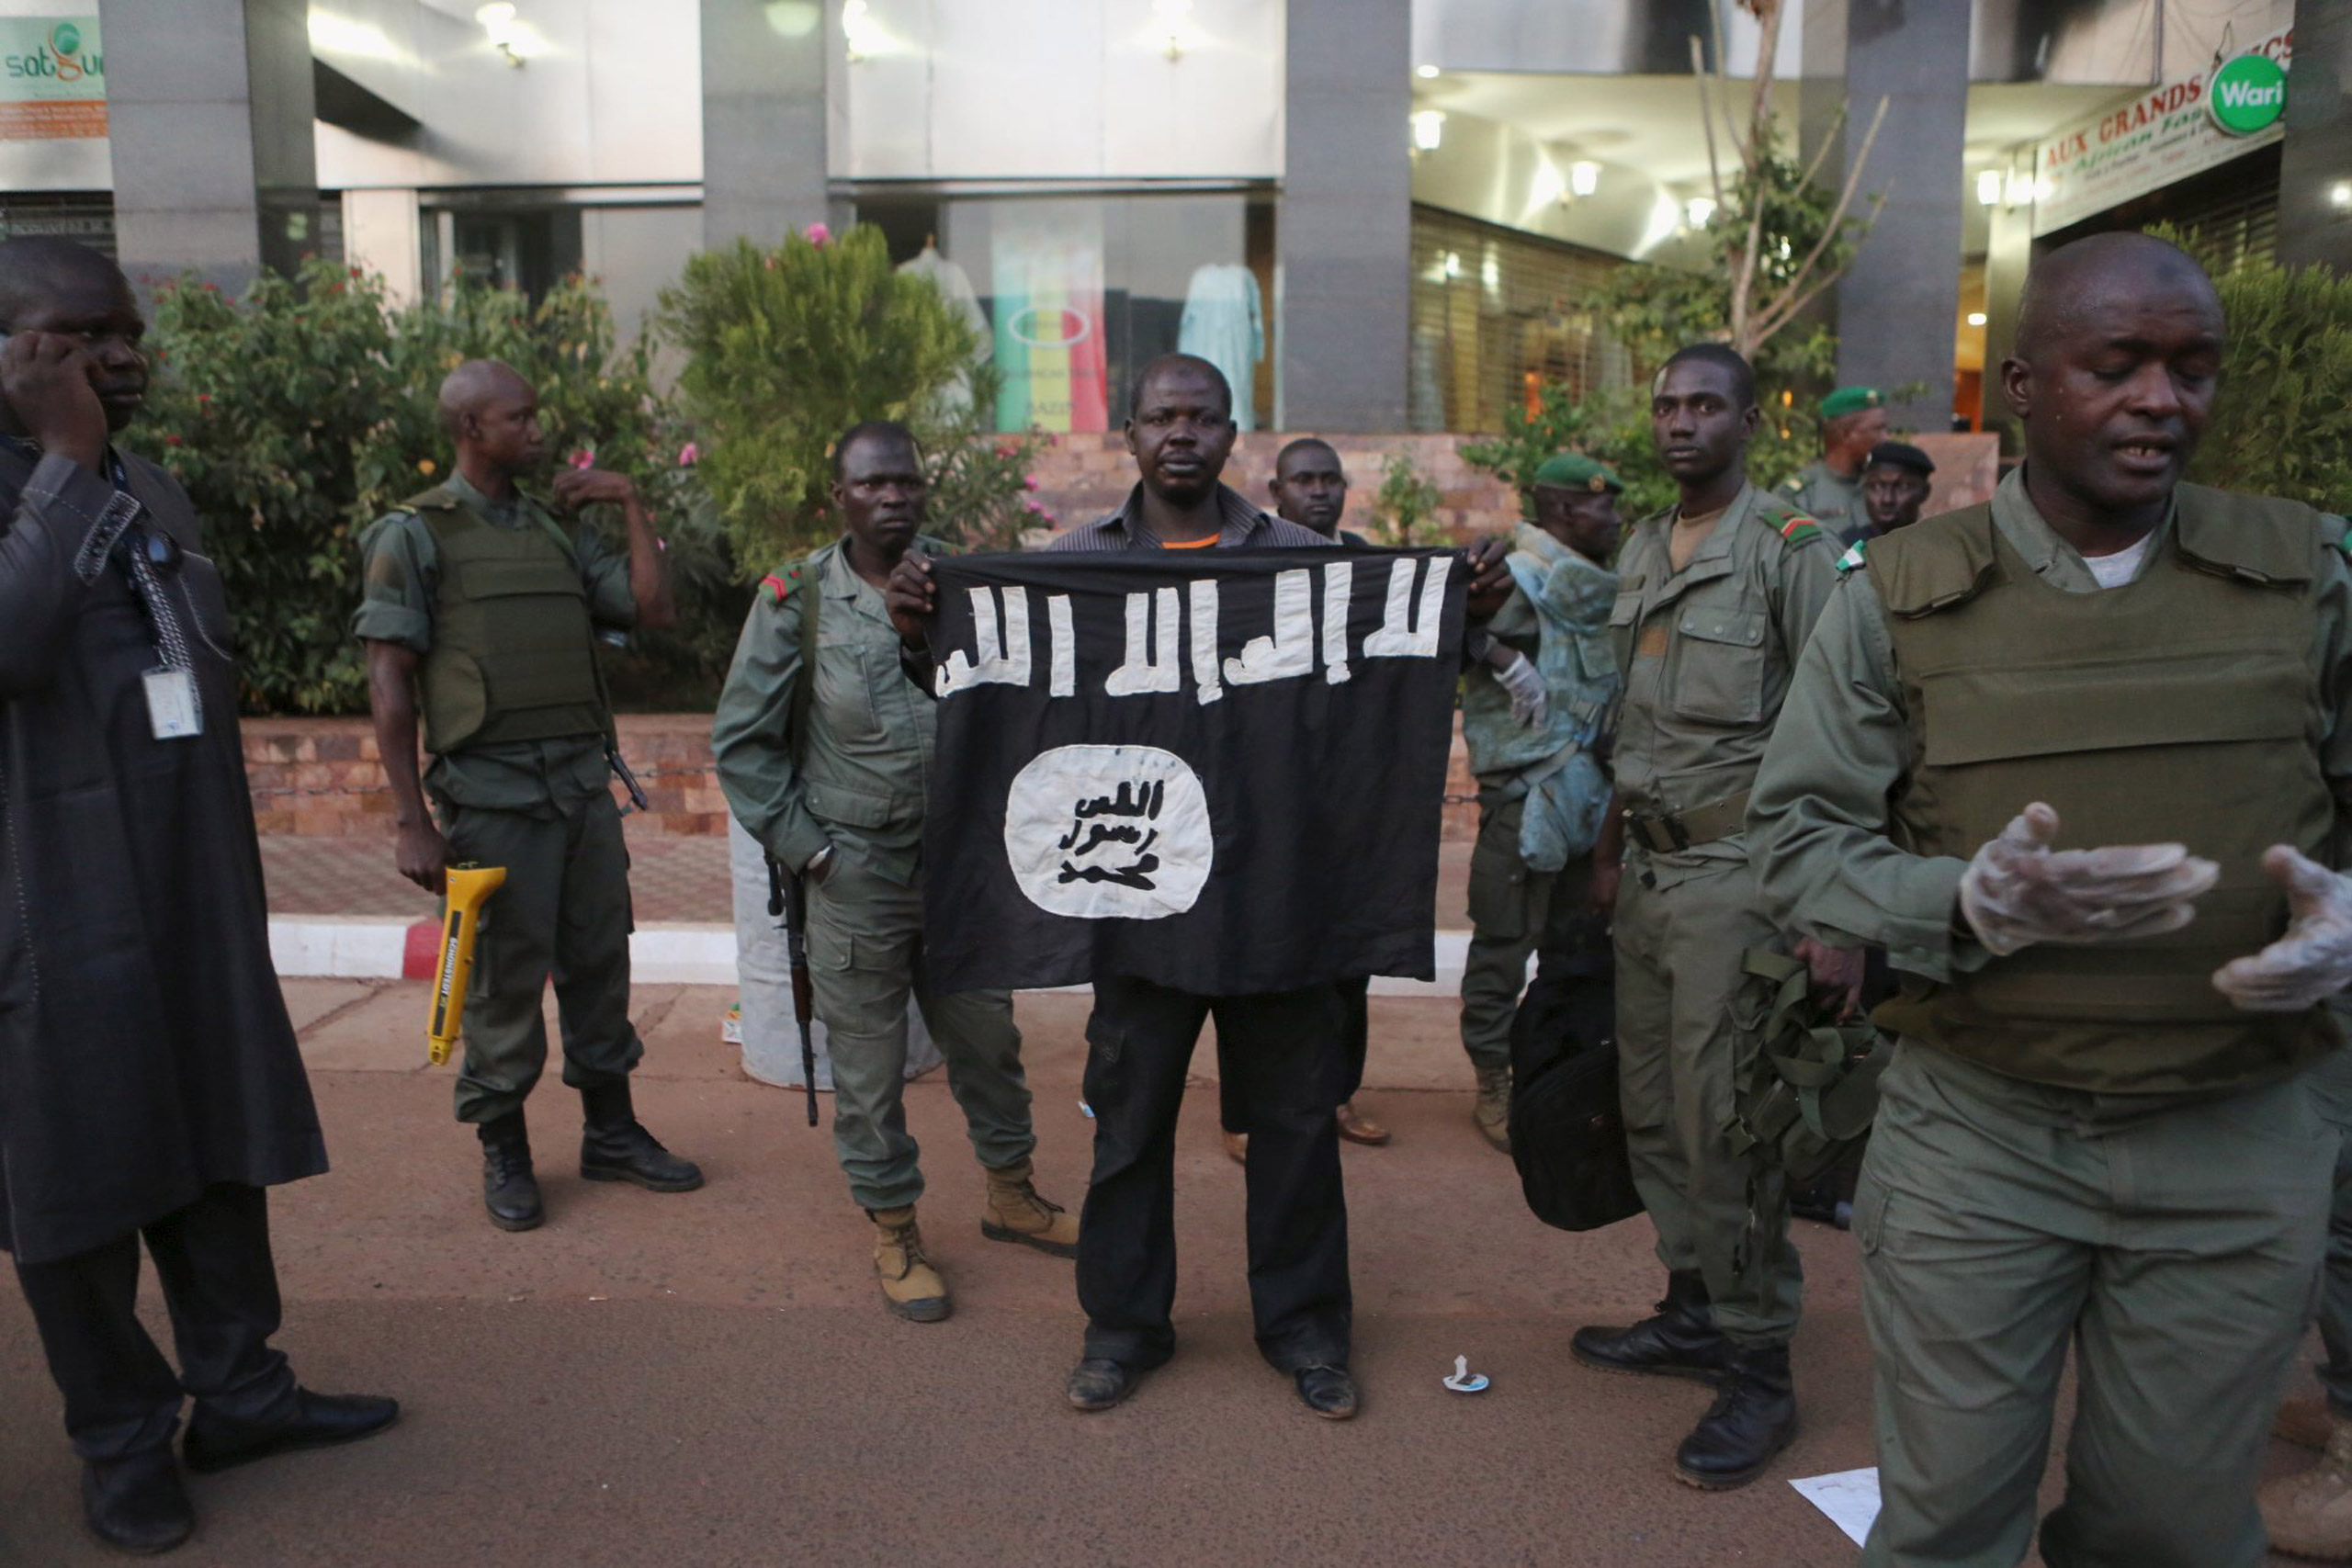 Malian security officials show a jihadist flag they said belonged to attackers in front of the Radisson hotel in Bamako, Mali, on Nov. 20, 2015.